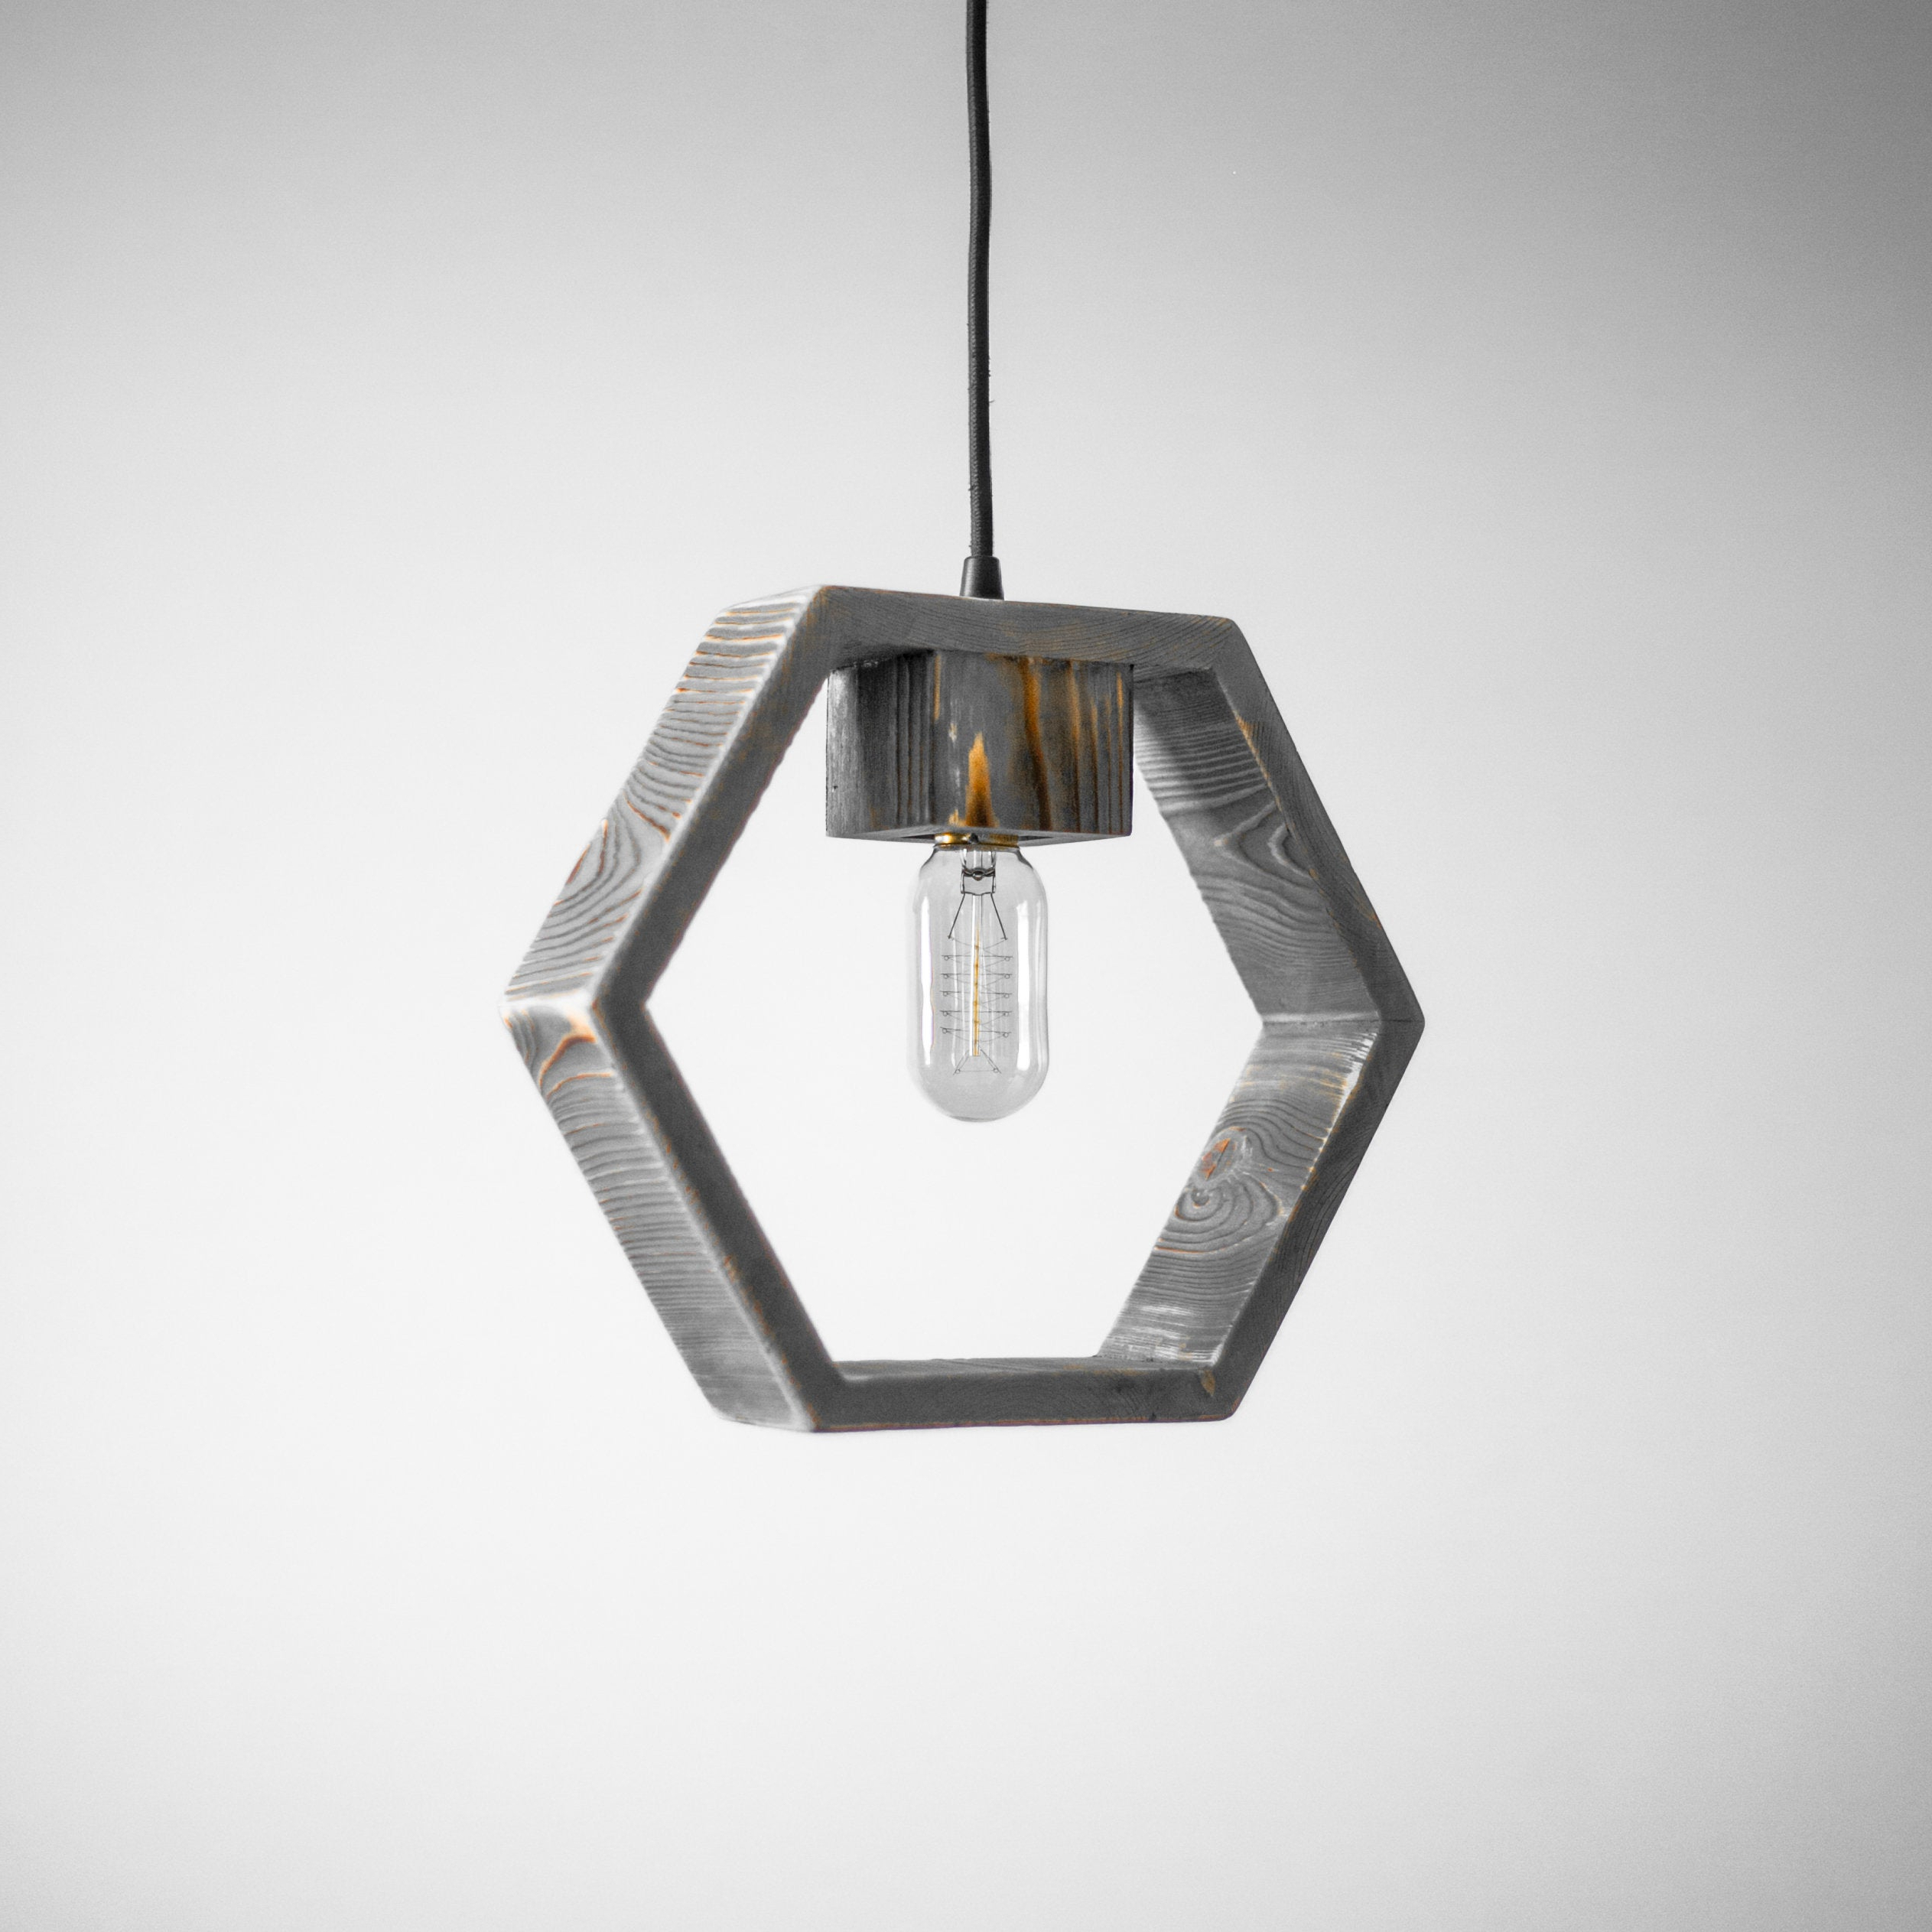 Hexagon Wood Pendant Light / Geometric Pendant Light / Modern Lamp /  Minimalistic Style / Industrial / Loft / Hanging Light / Chandelier In Widely Used Rossi Industrial Vintage 1 Light Geometric Pendants (View 3 of 25)